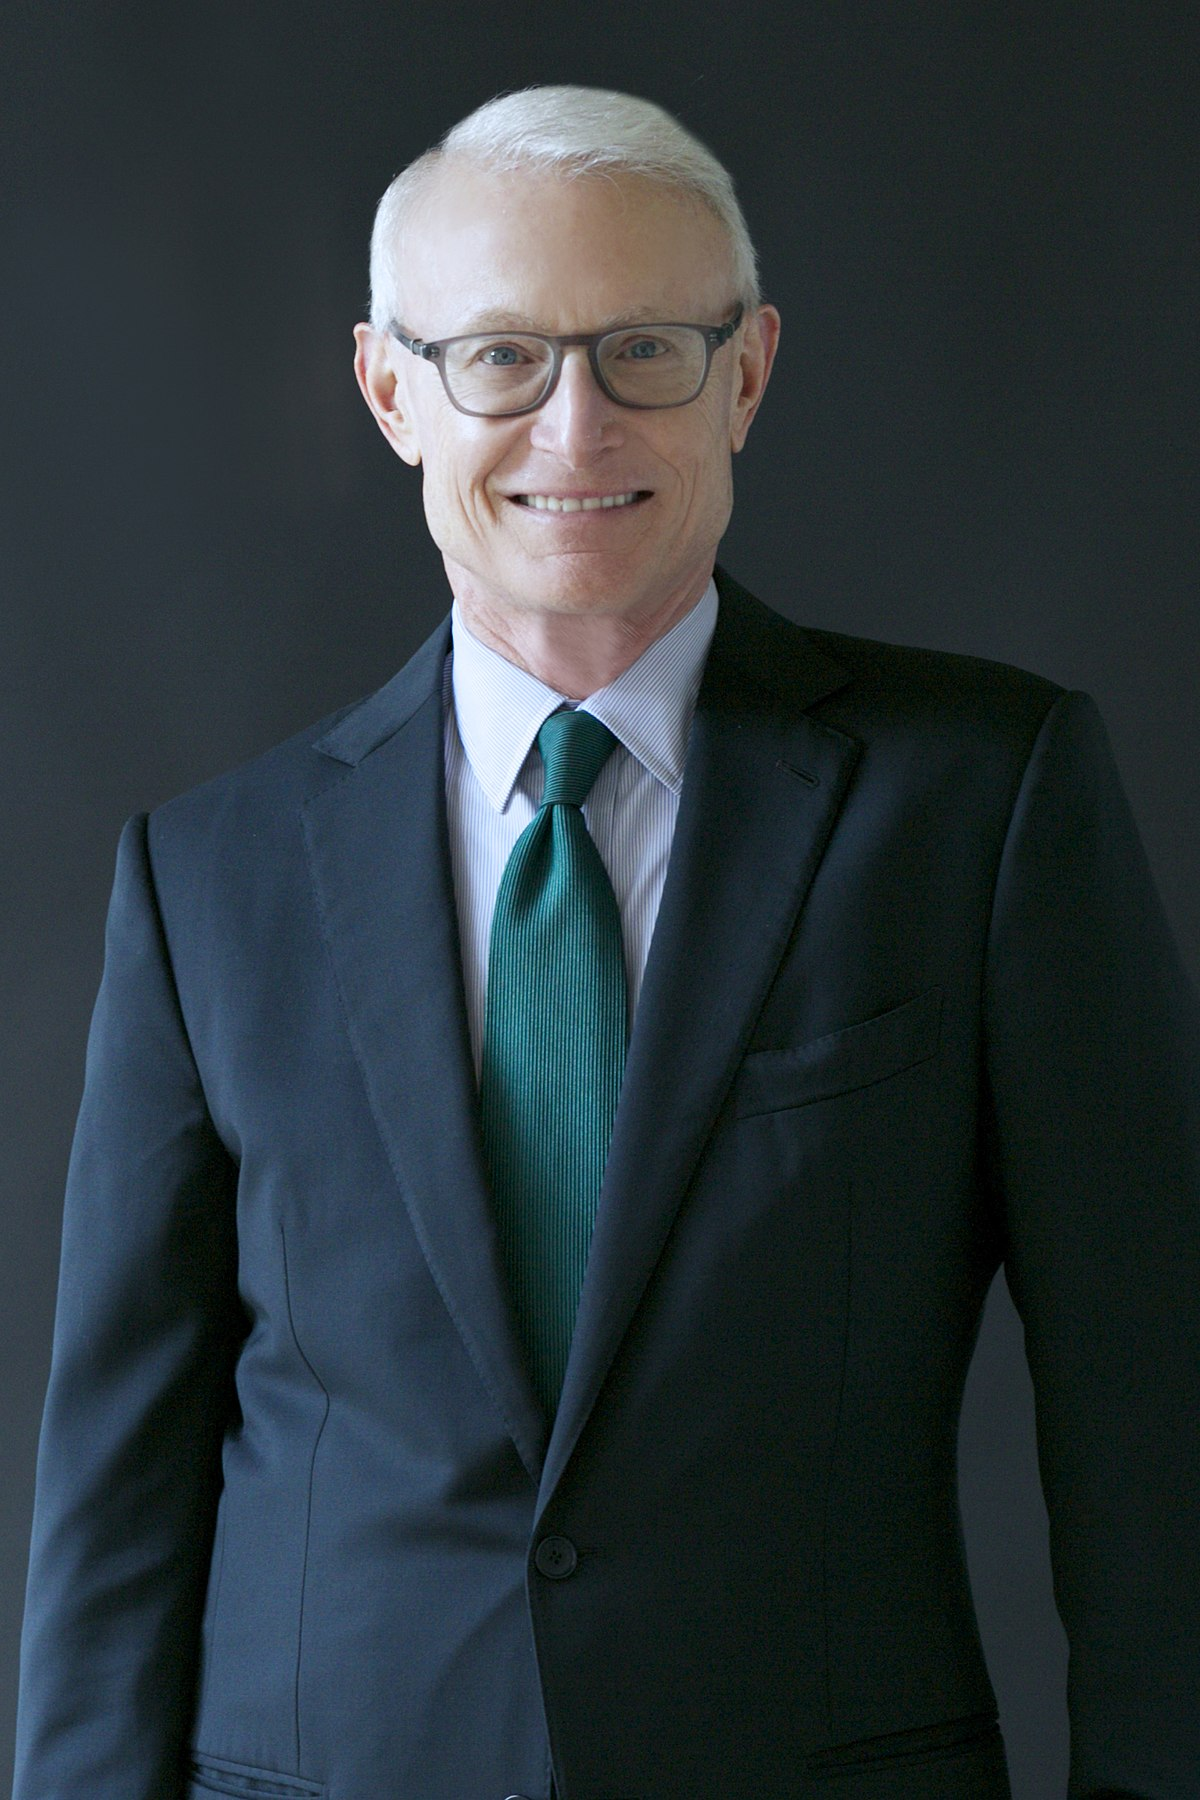 michael porter theory Michael porter (born 1947) is the doyen of living management gurus, a professor at harvard business school whose office is a whole on-campus house, home of his own institute for strategy and competitiveness game theory february 16th, 18:31.